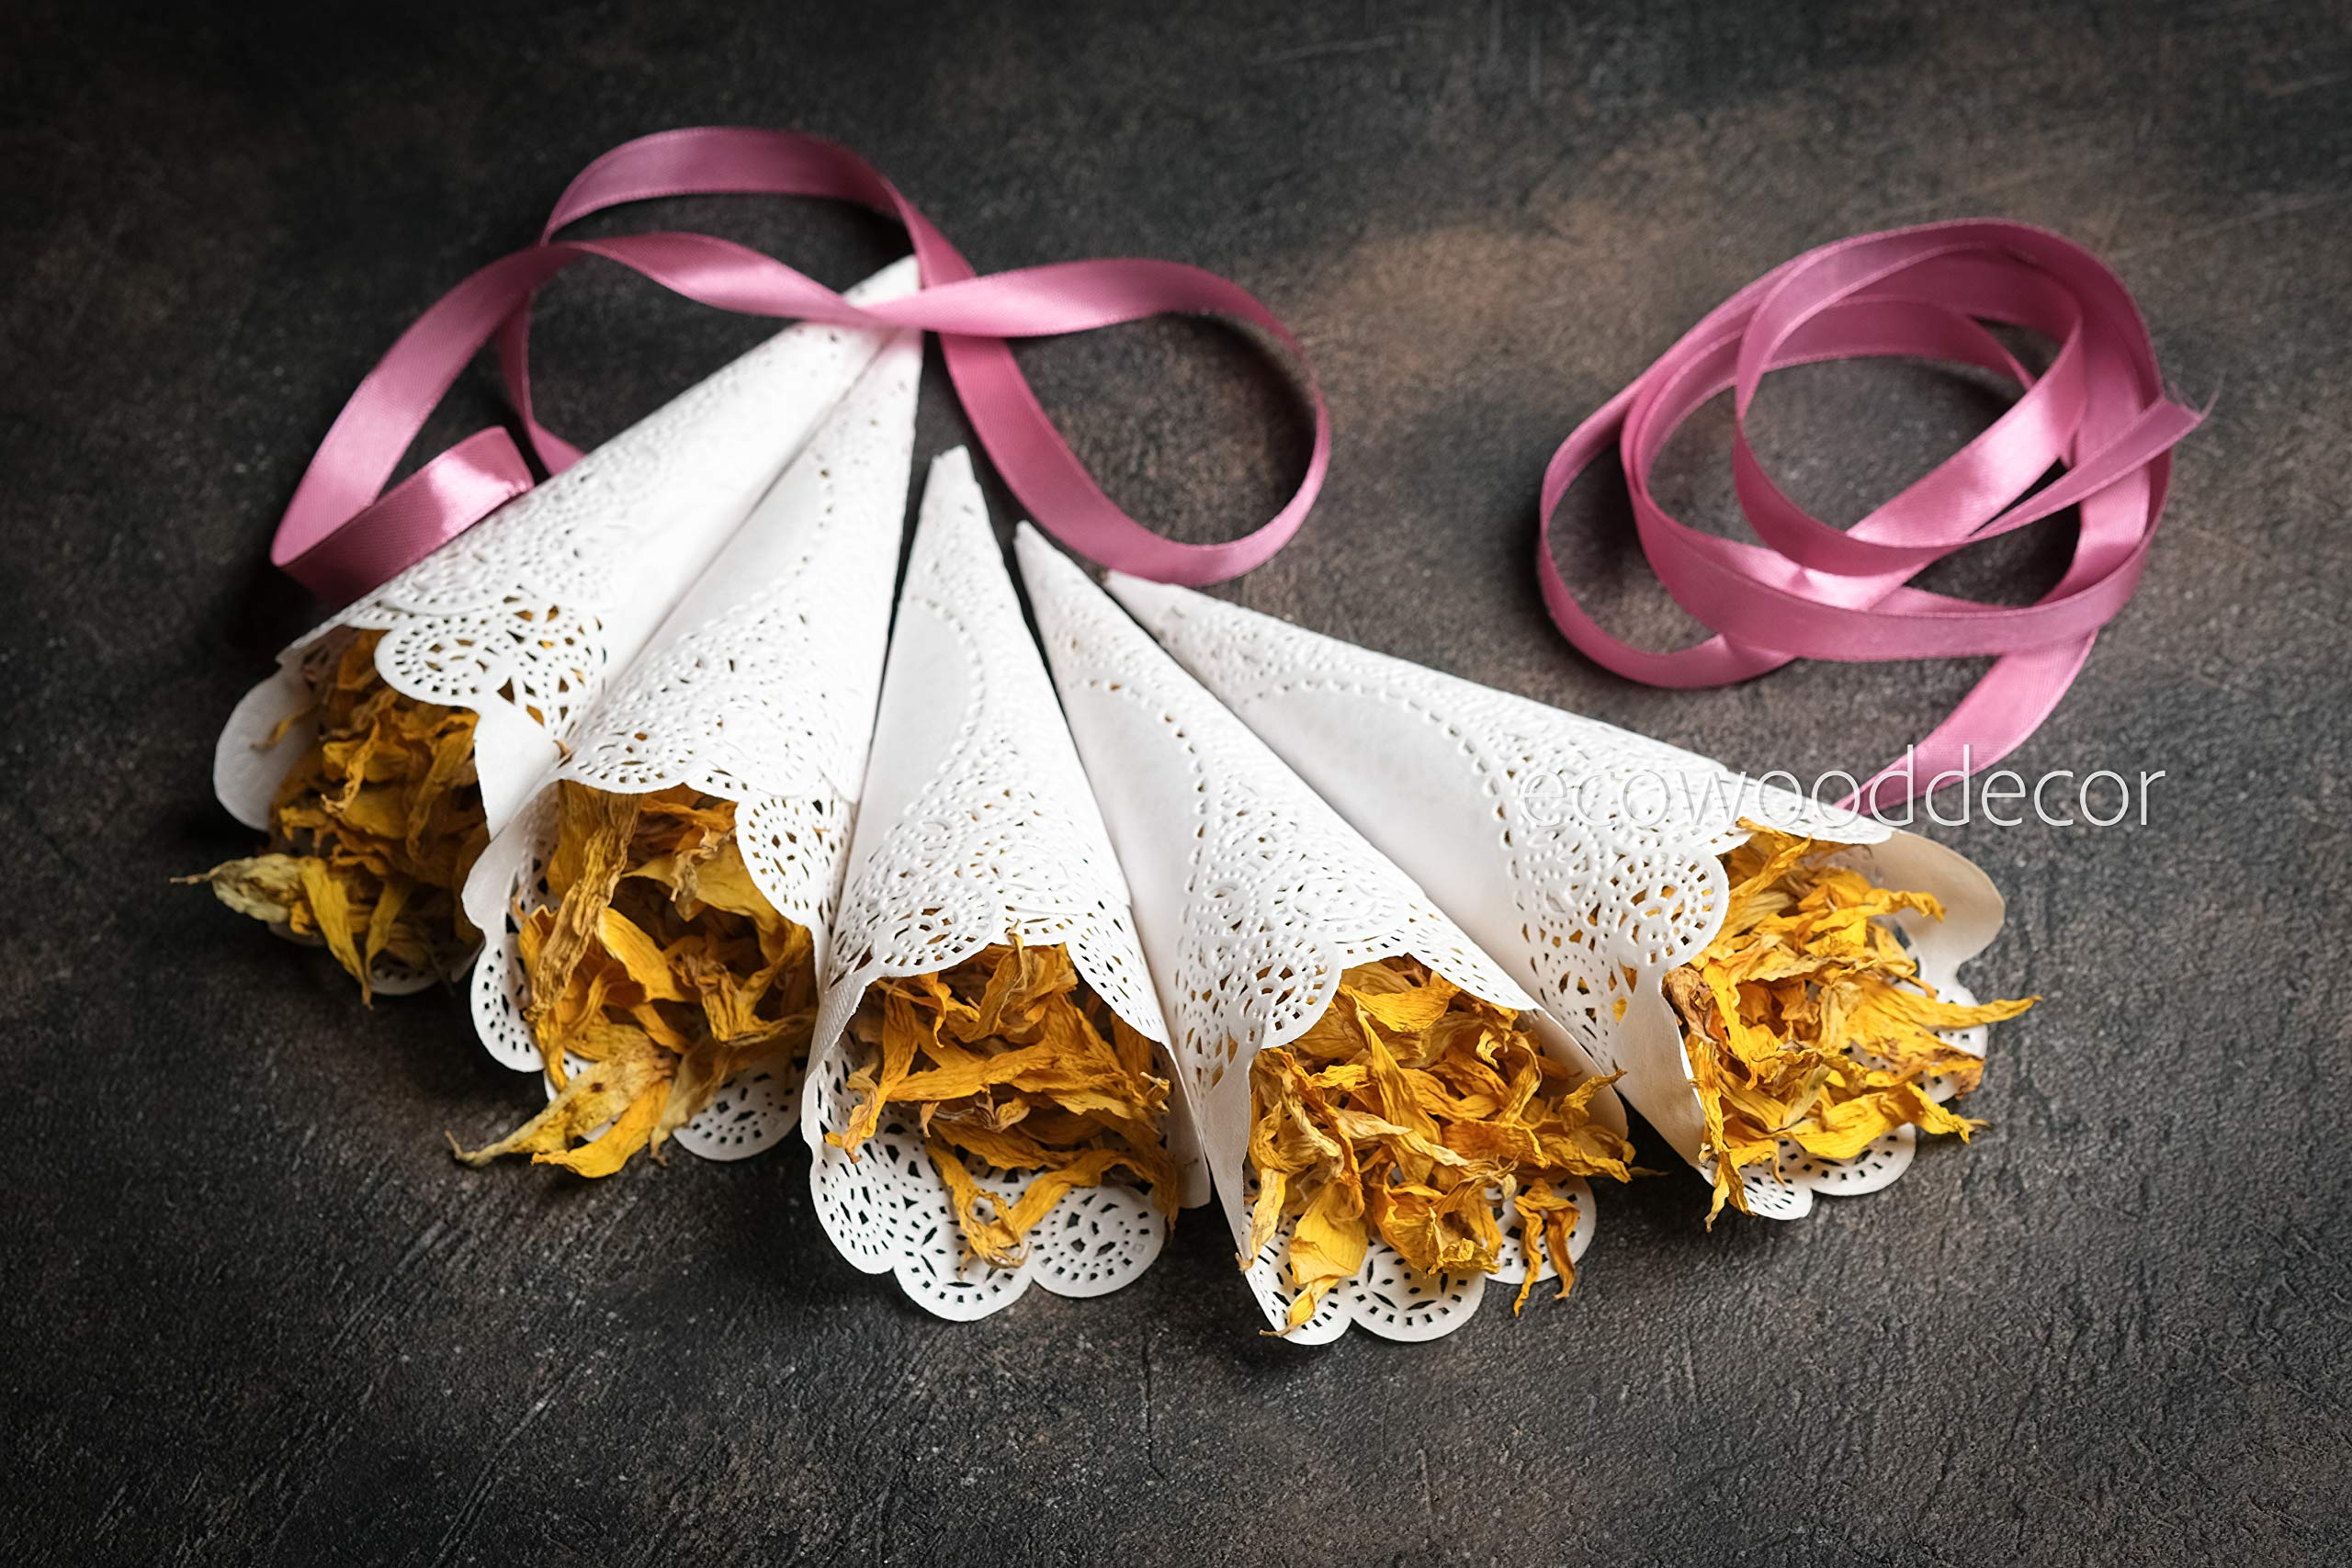 EcoWoodDecor Prerolled Wedding Confetti Cones. Set of 150 Paper Cones for Petals, Lavender, Rice, Confetti or Other toss (150)